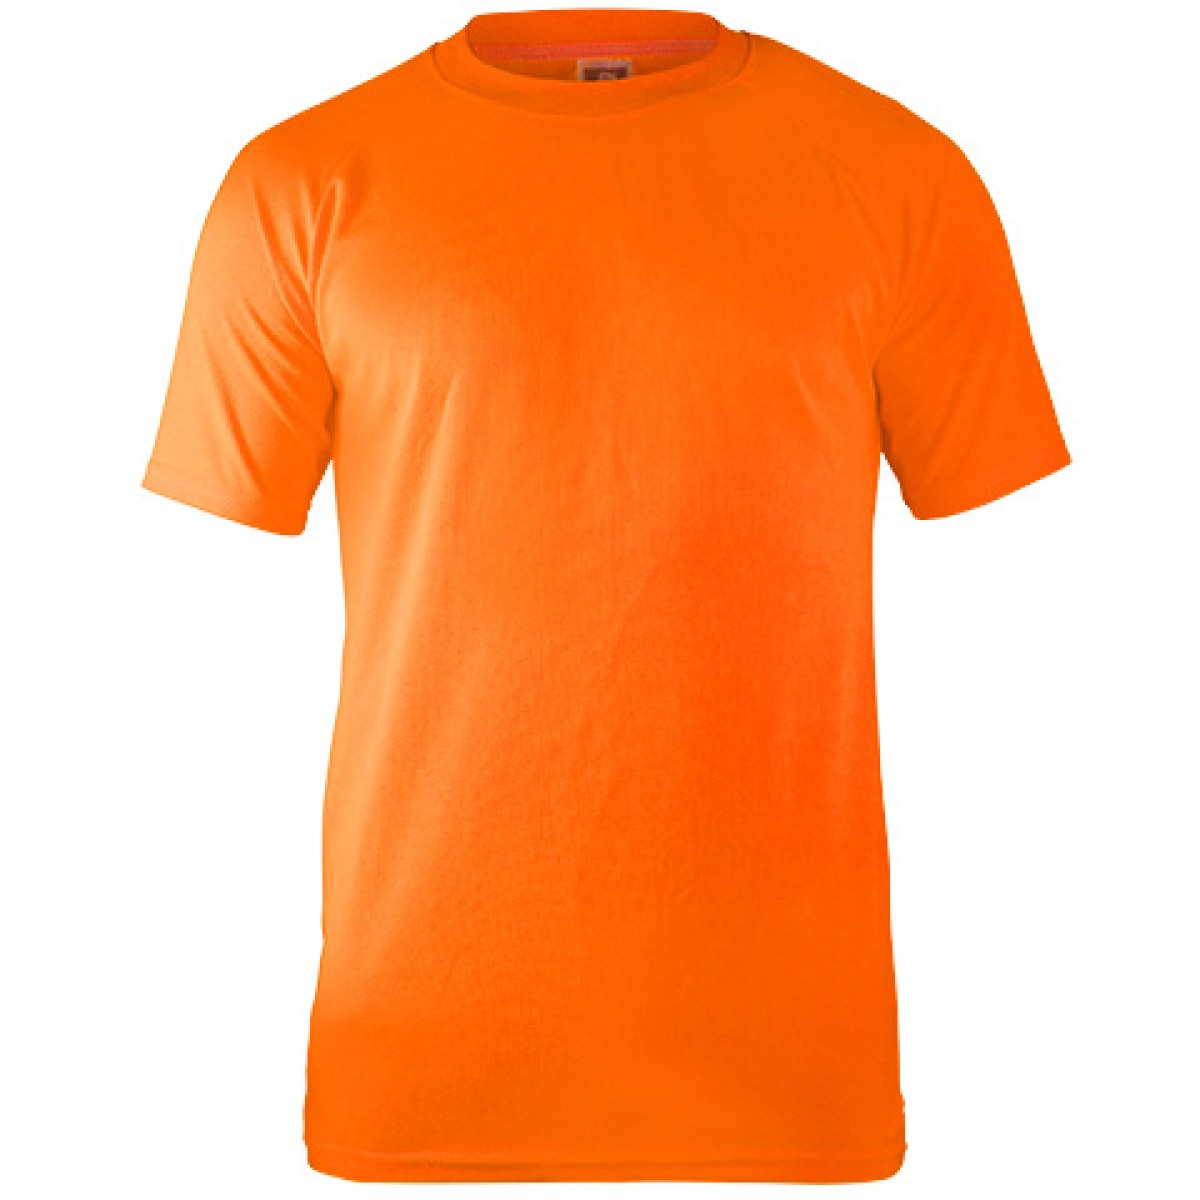 Performance T-shirt-Safety Orange-M